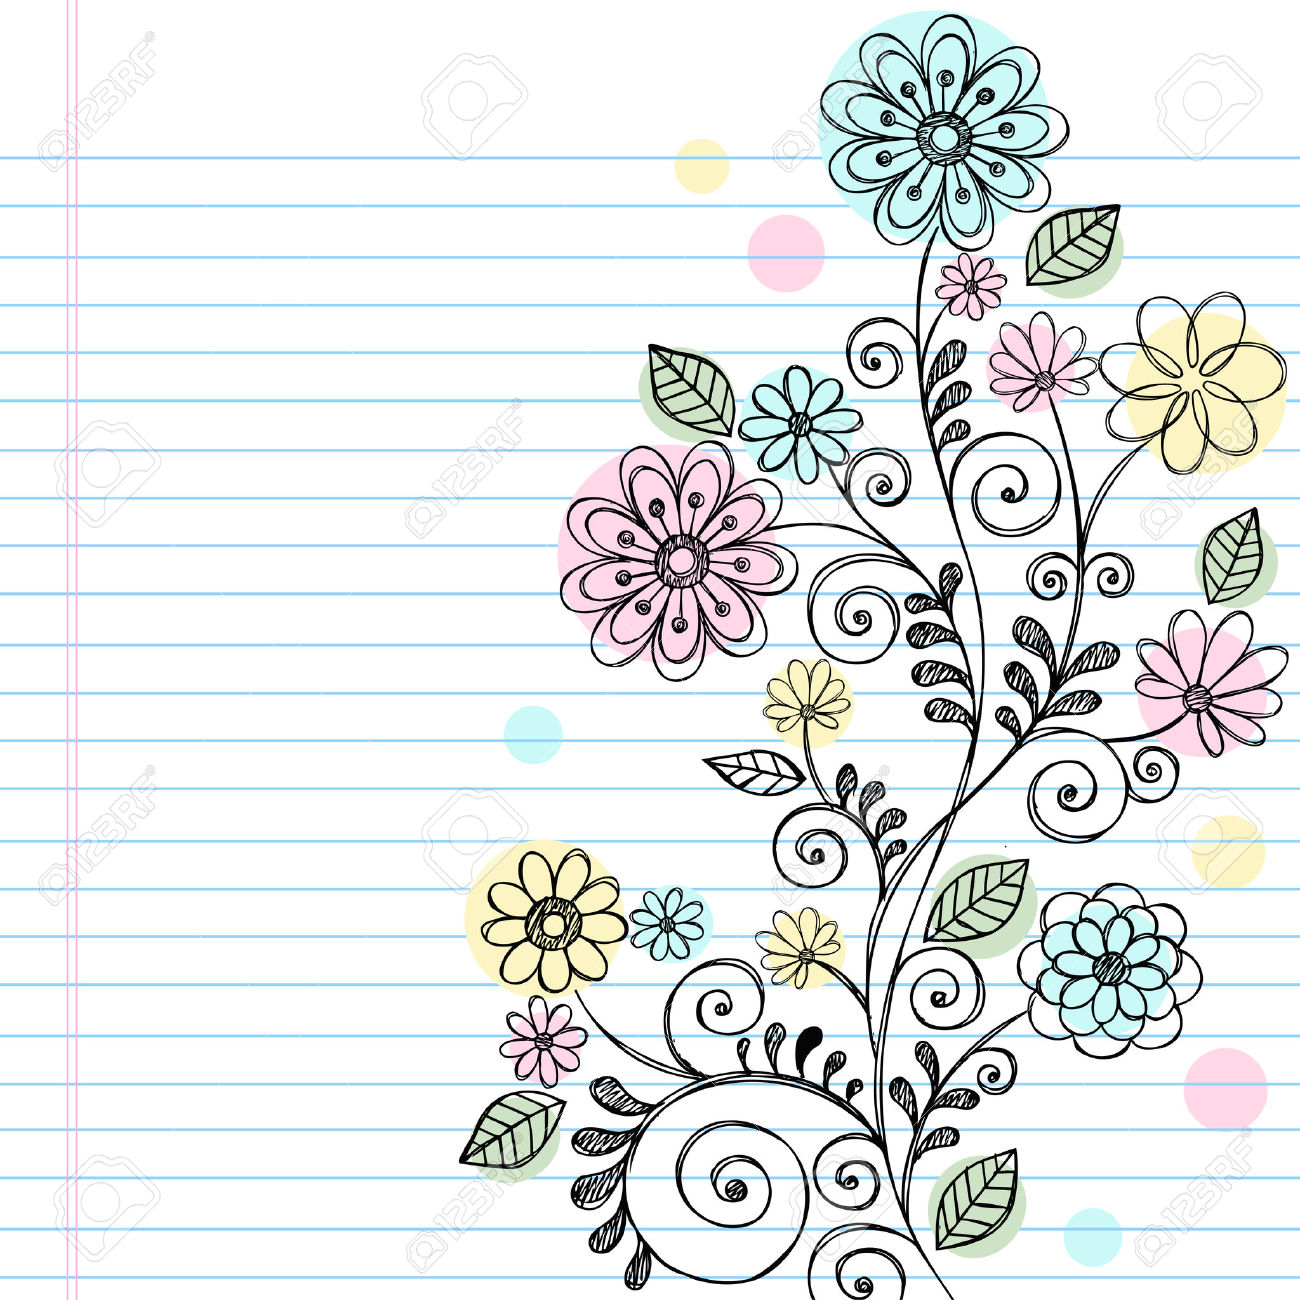 Drawn paper note book Search Search Google notebook notebook